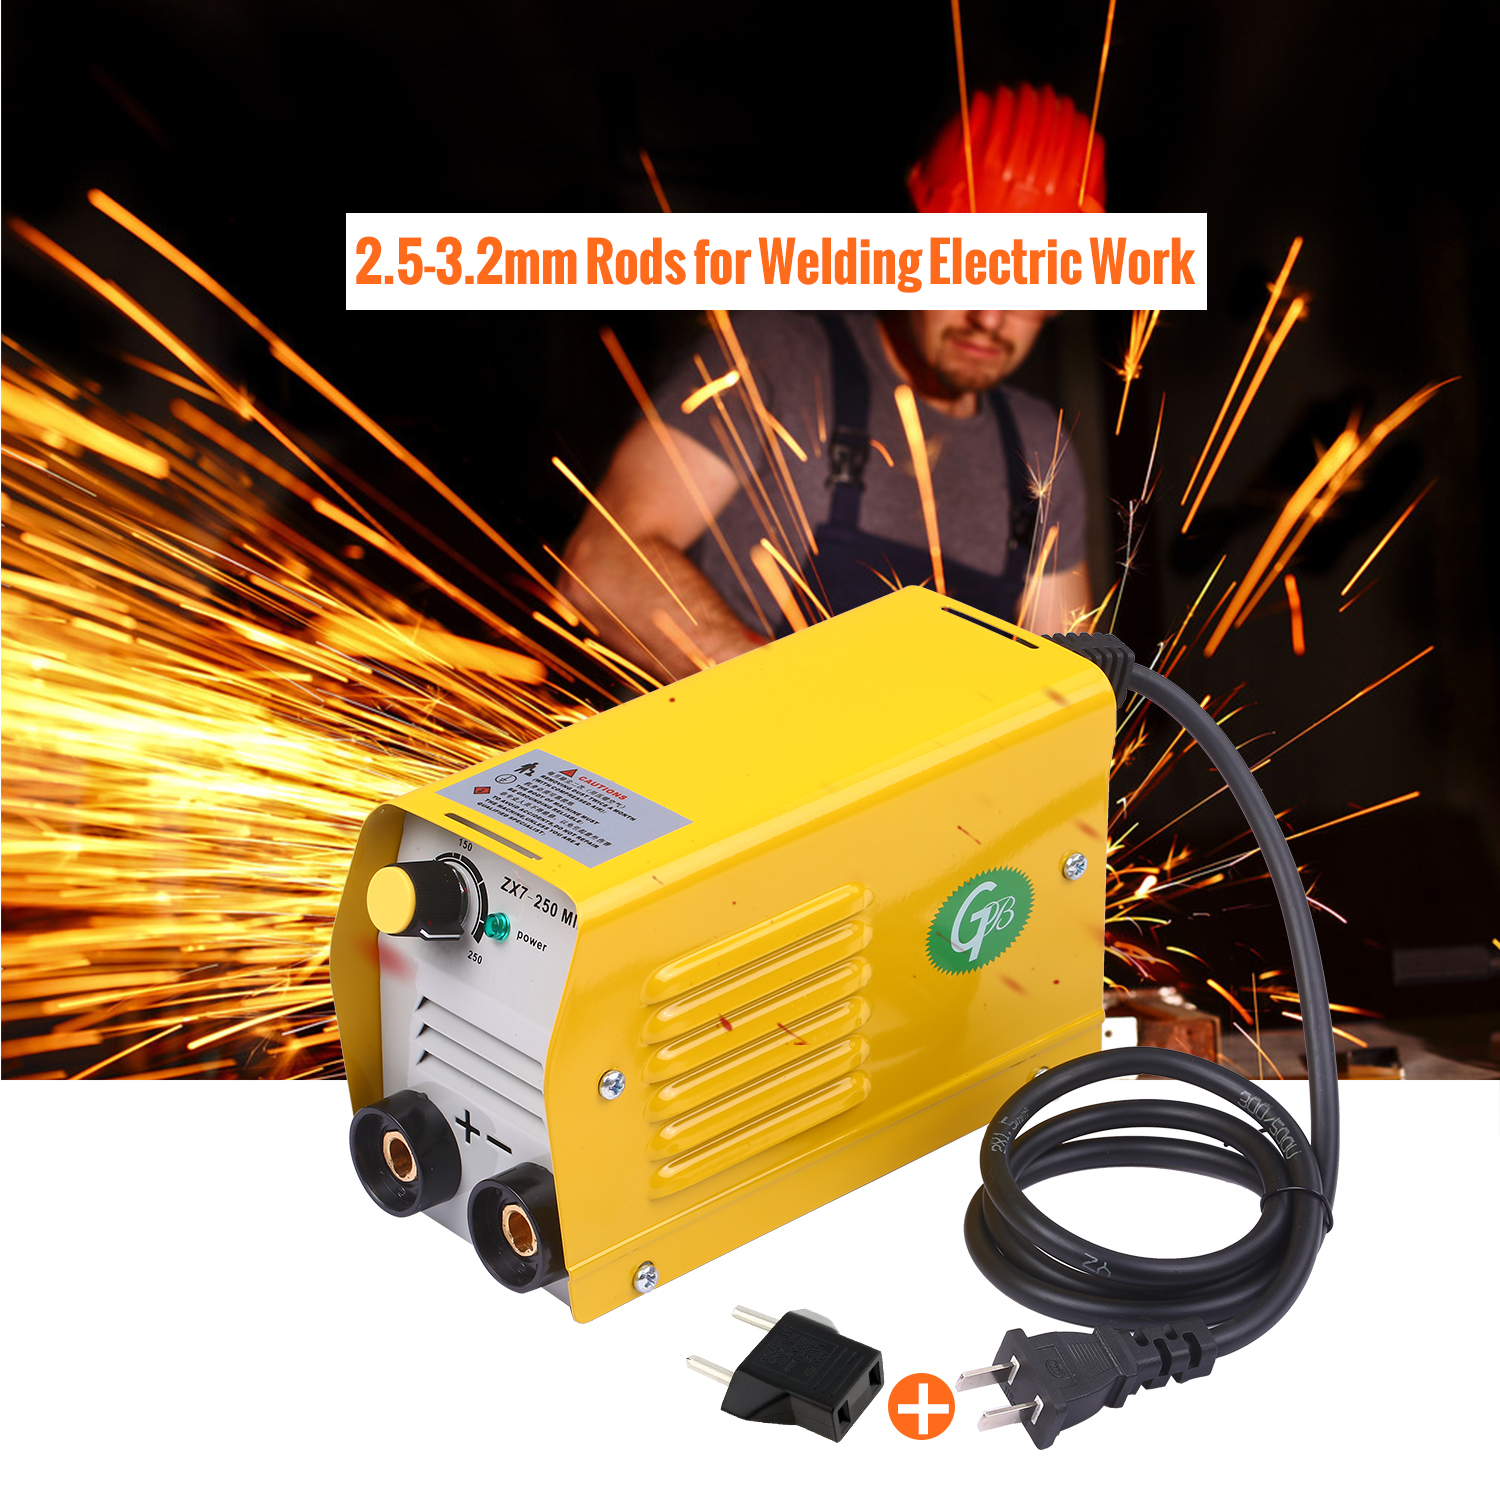 Arc Welding Machine 250Amps IGBT Welding Inventer equipment no-Stick Welder for 2.5-3.2mm Rods for Electric Work with Safety Set